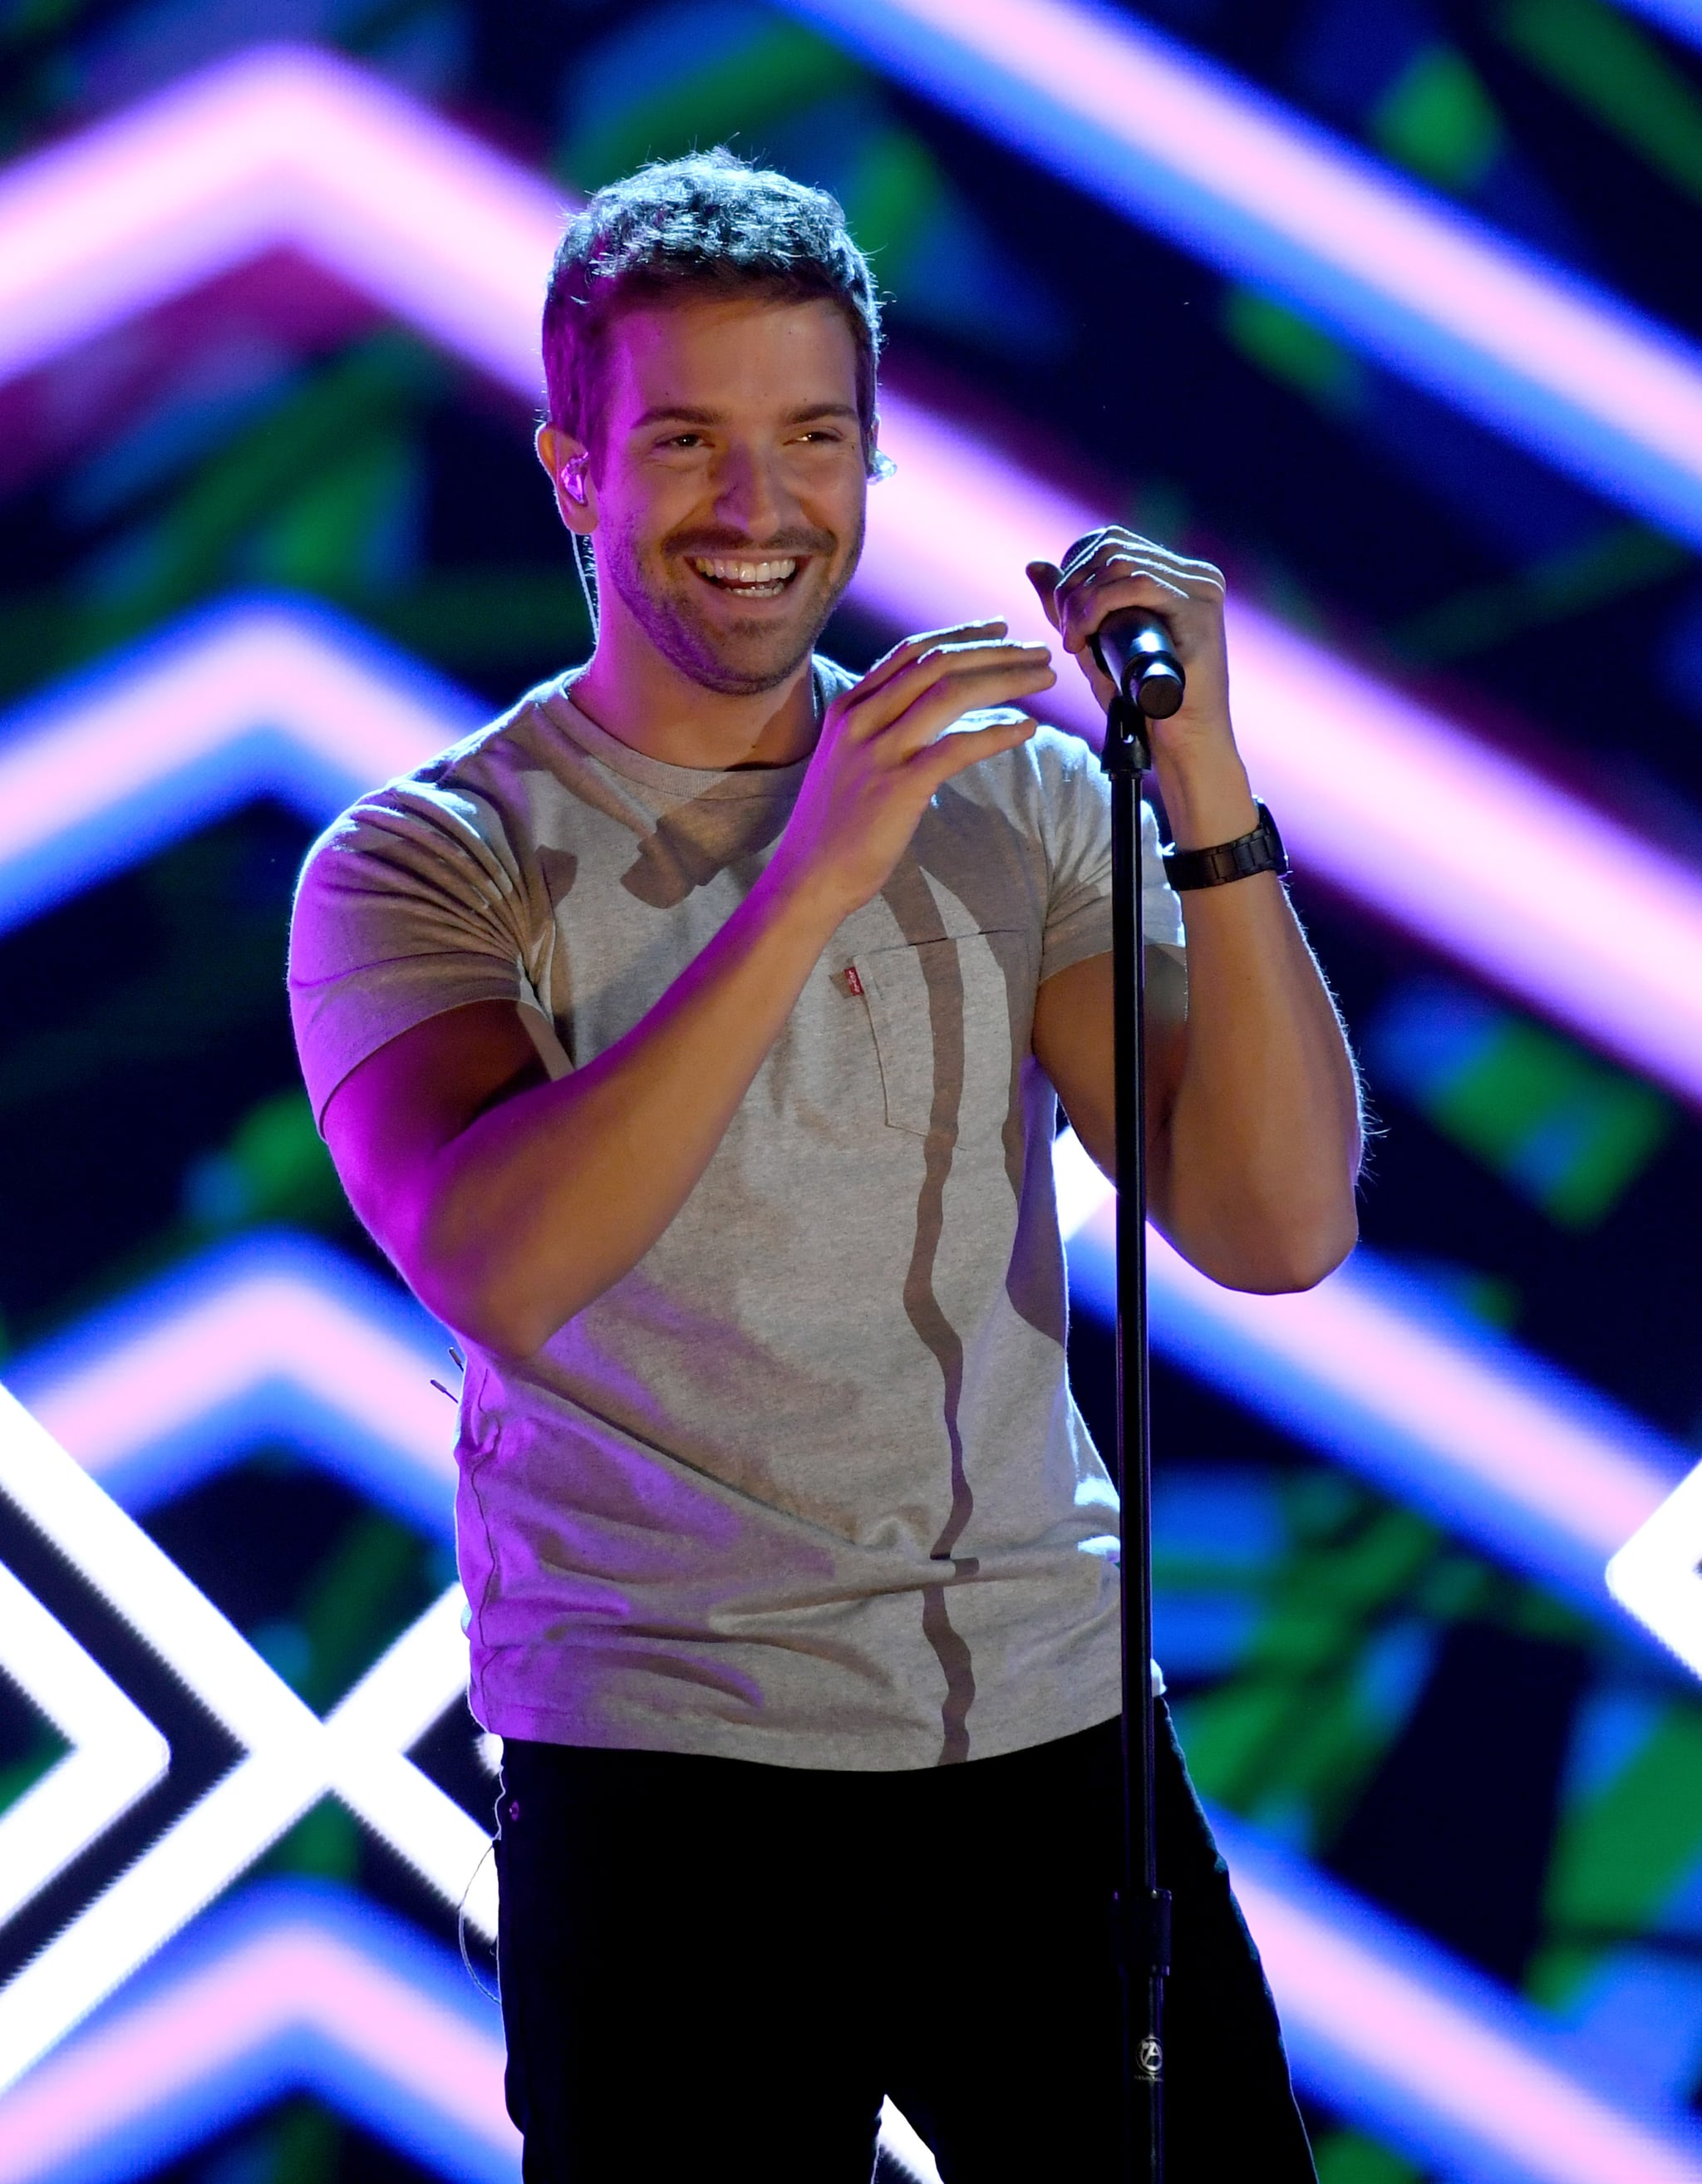 LAS VEGAS, NV - NOVEMBER 12:  Pablo Alboran performs onstage during rehearsals for the 19th annual Latin GRAMMY Awards at MGM Grand Garden Arena on November 12, 2018 in Las Vegas, Nevada.  (Photo by Ethan Miller/Getty Images for LARAS )